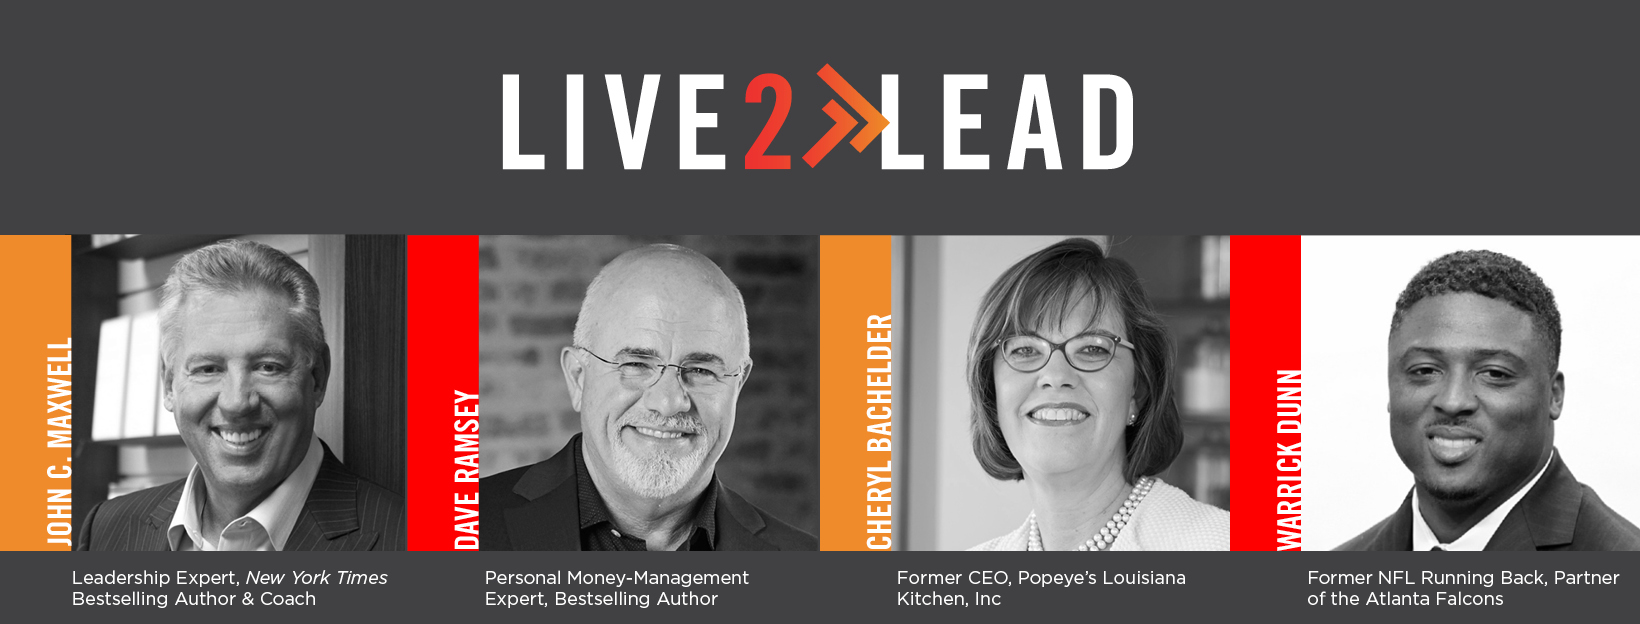 Live2Lead Speakers